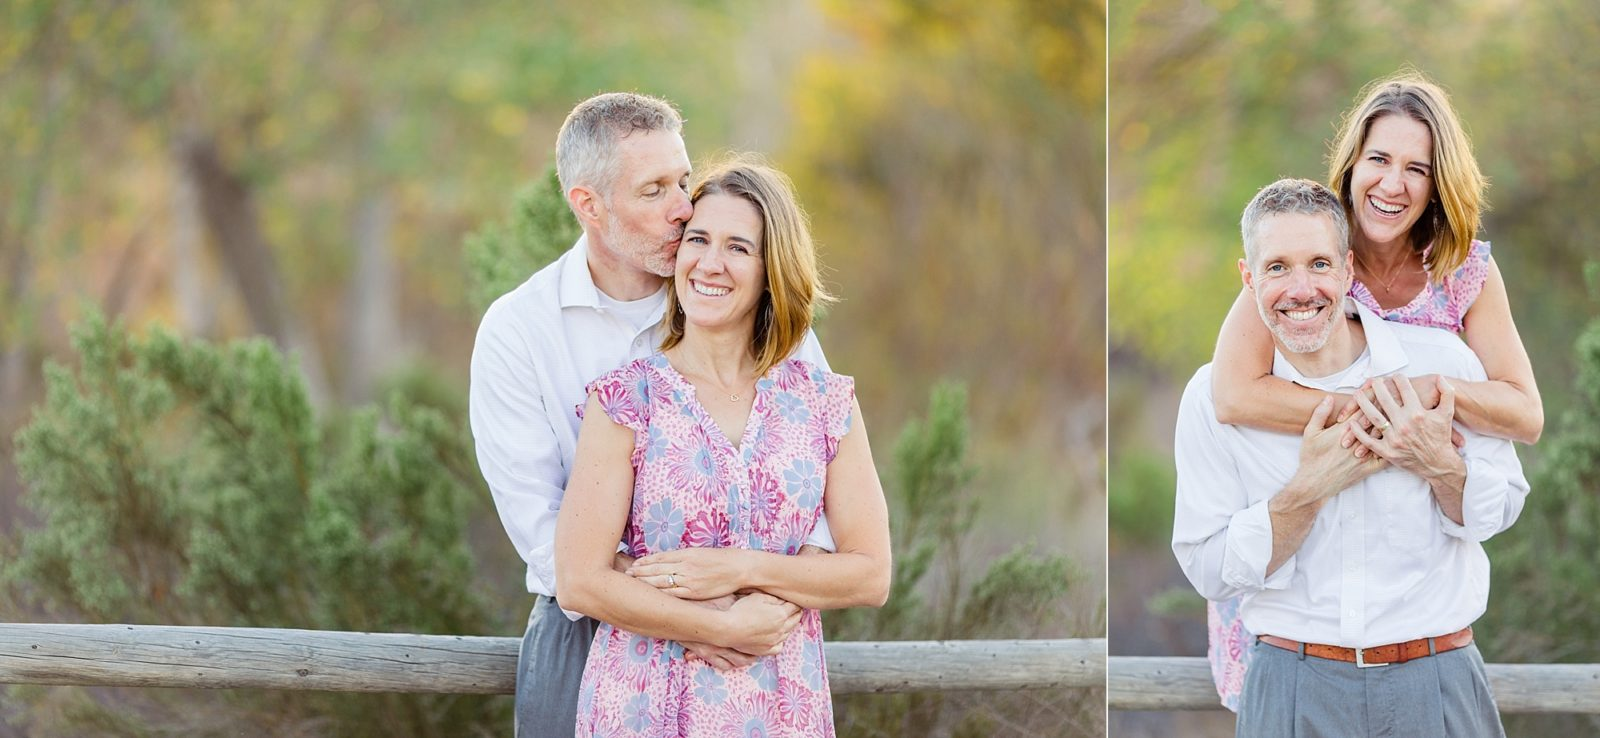 Couple Photo | San Diego Family Photography